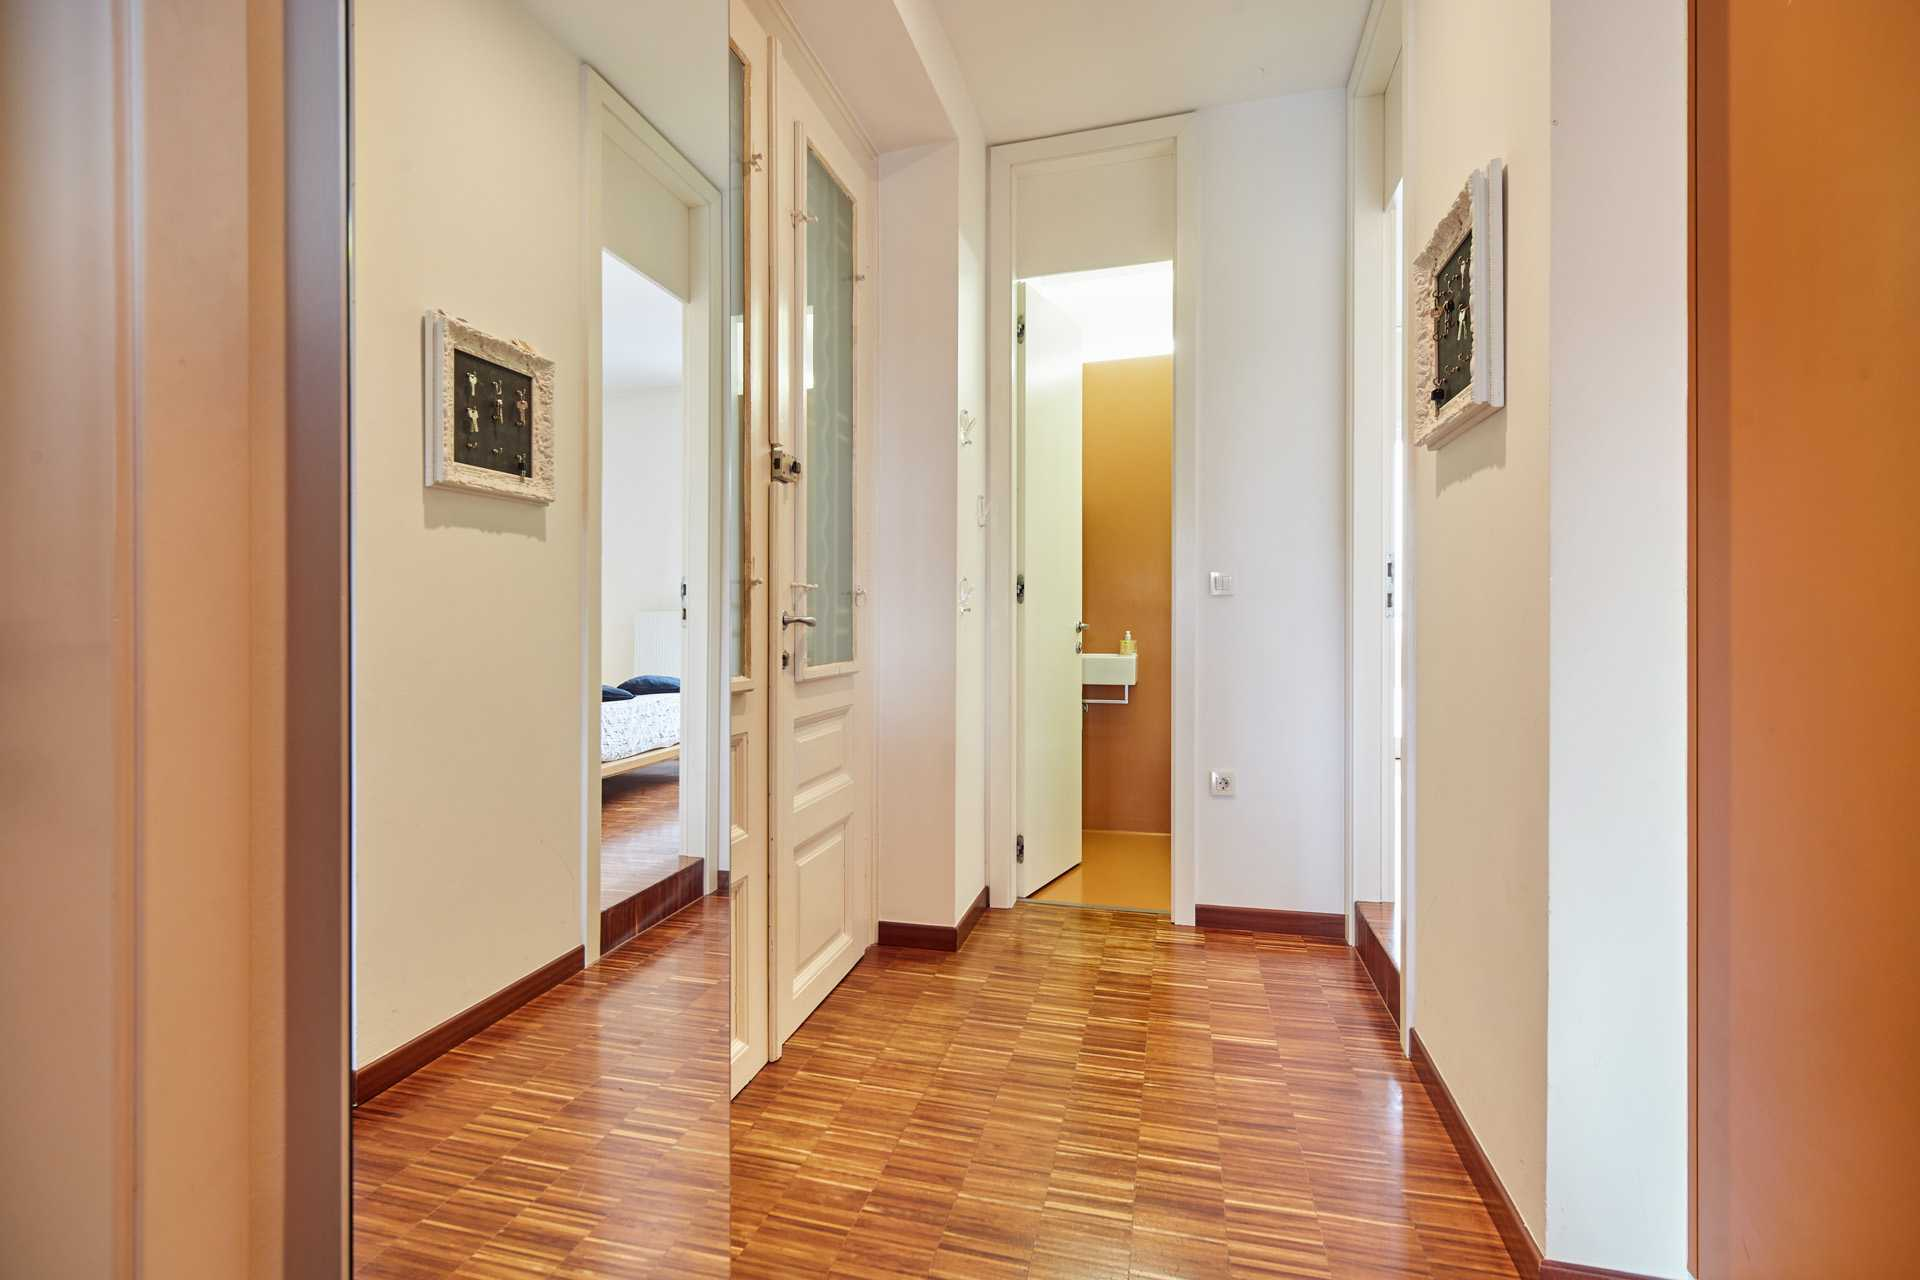 Ljubljana two bedroom apartment's entrance hall